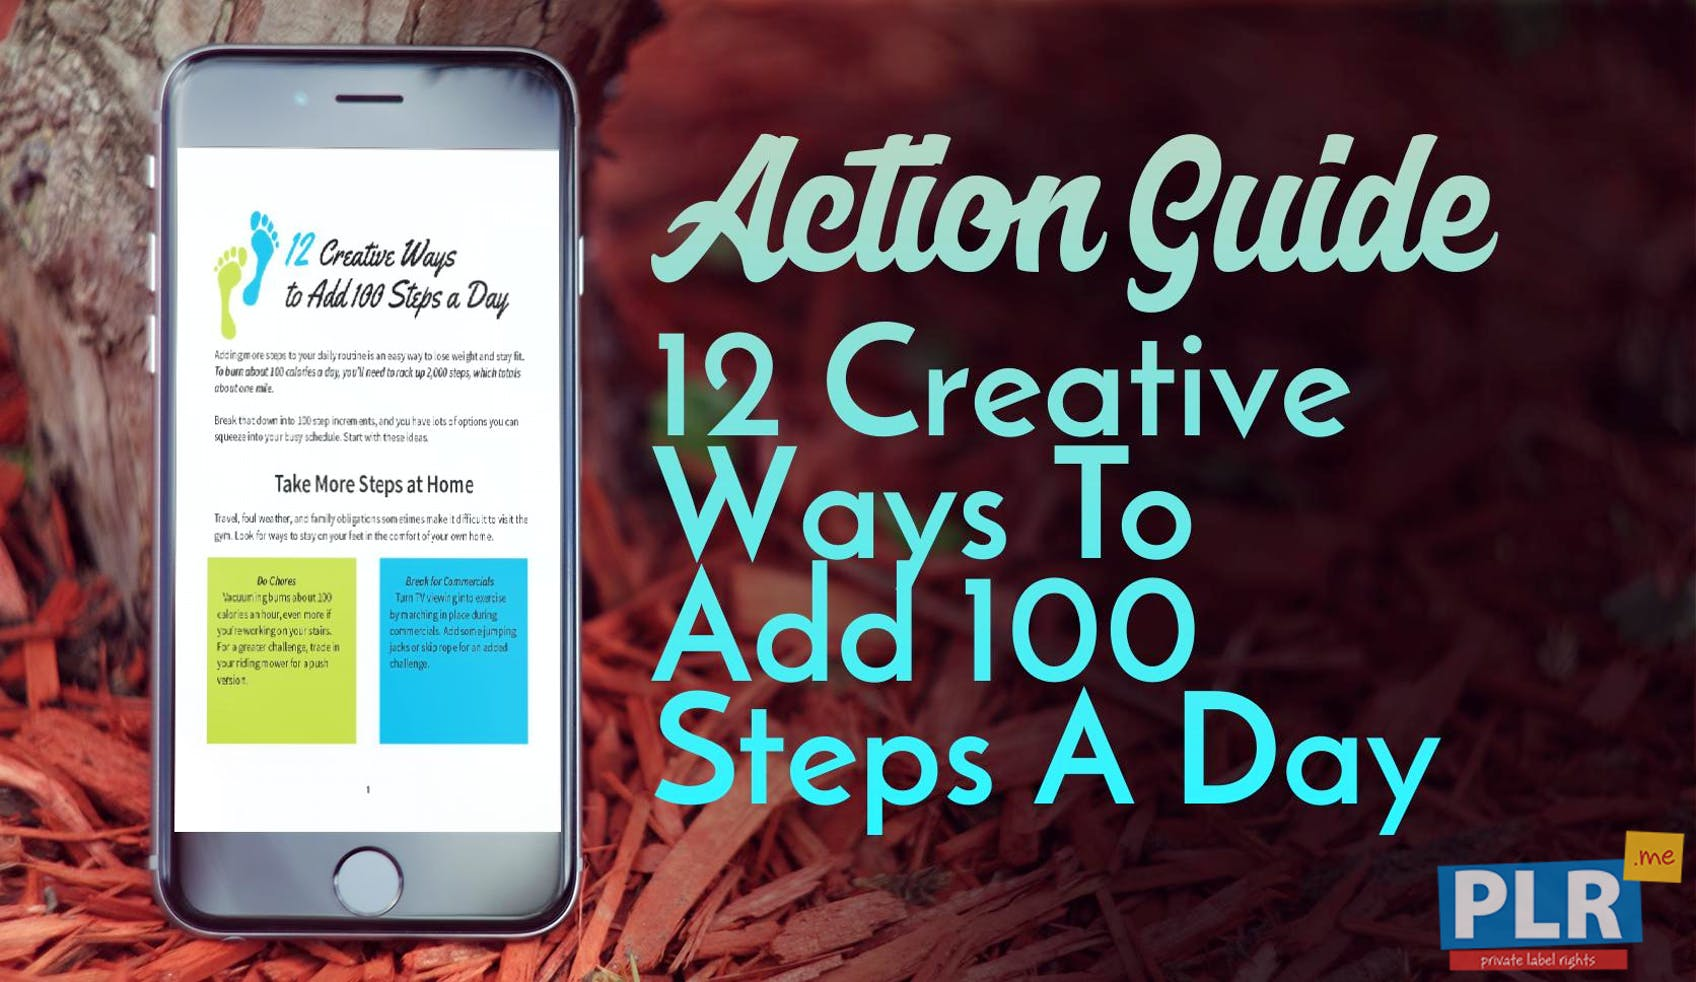 12 Creative Ways To Add 100 Steps A Day